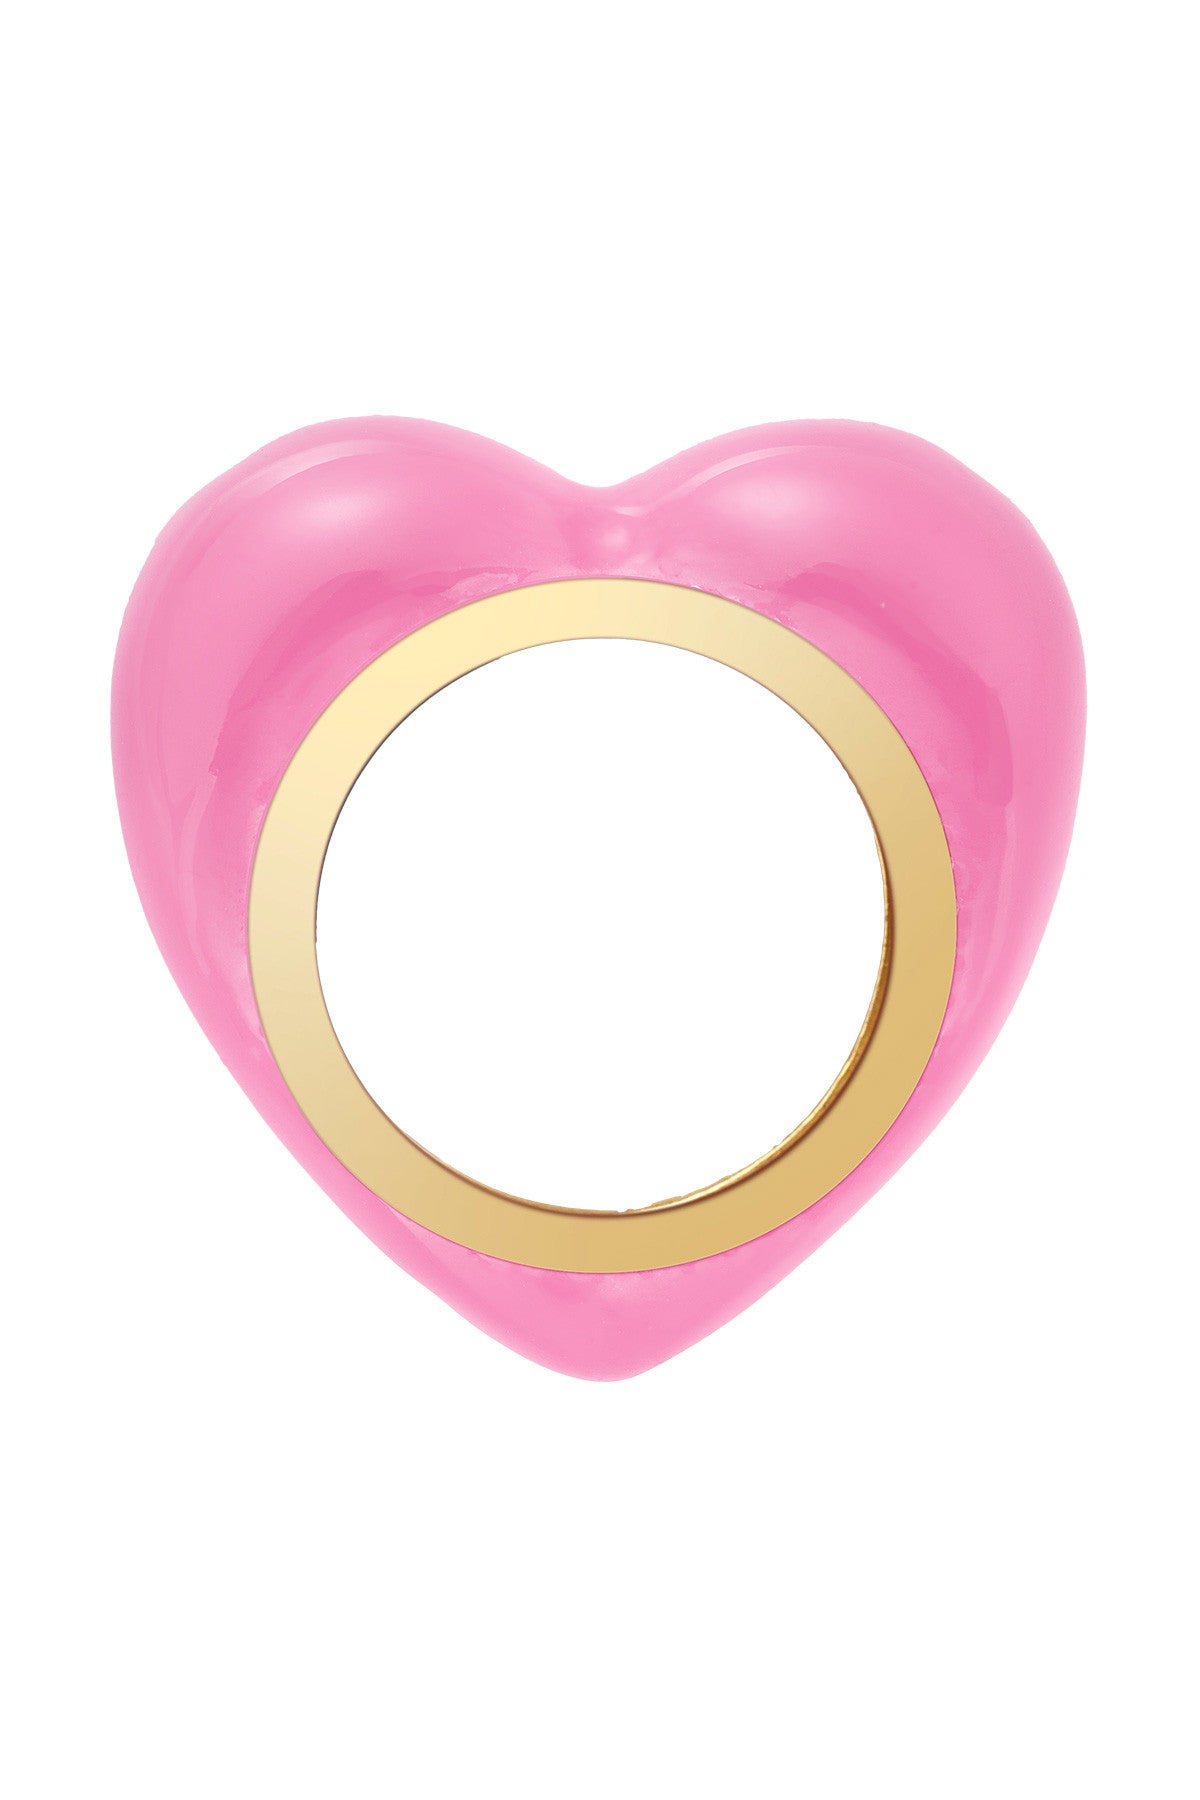 All My Heart Ring - 3 Color Options